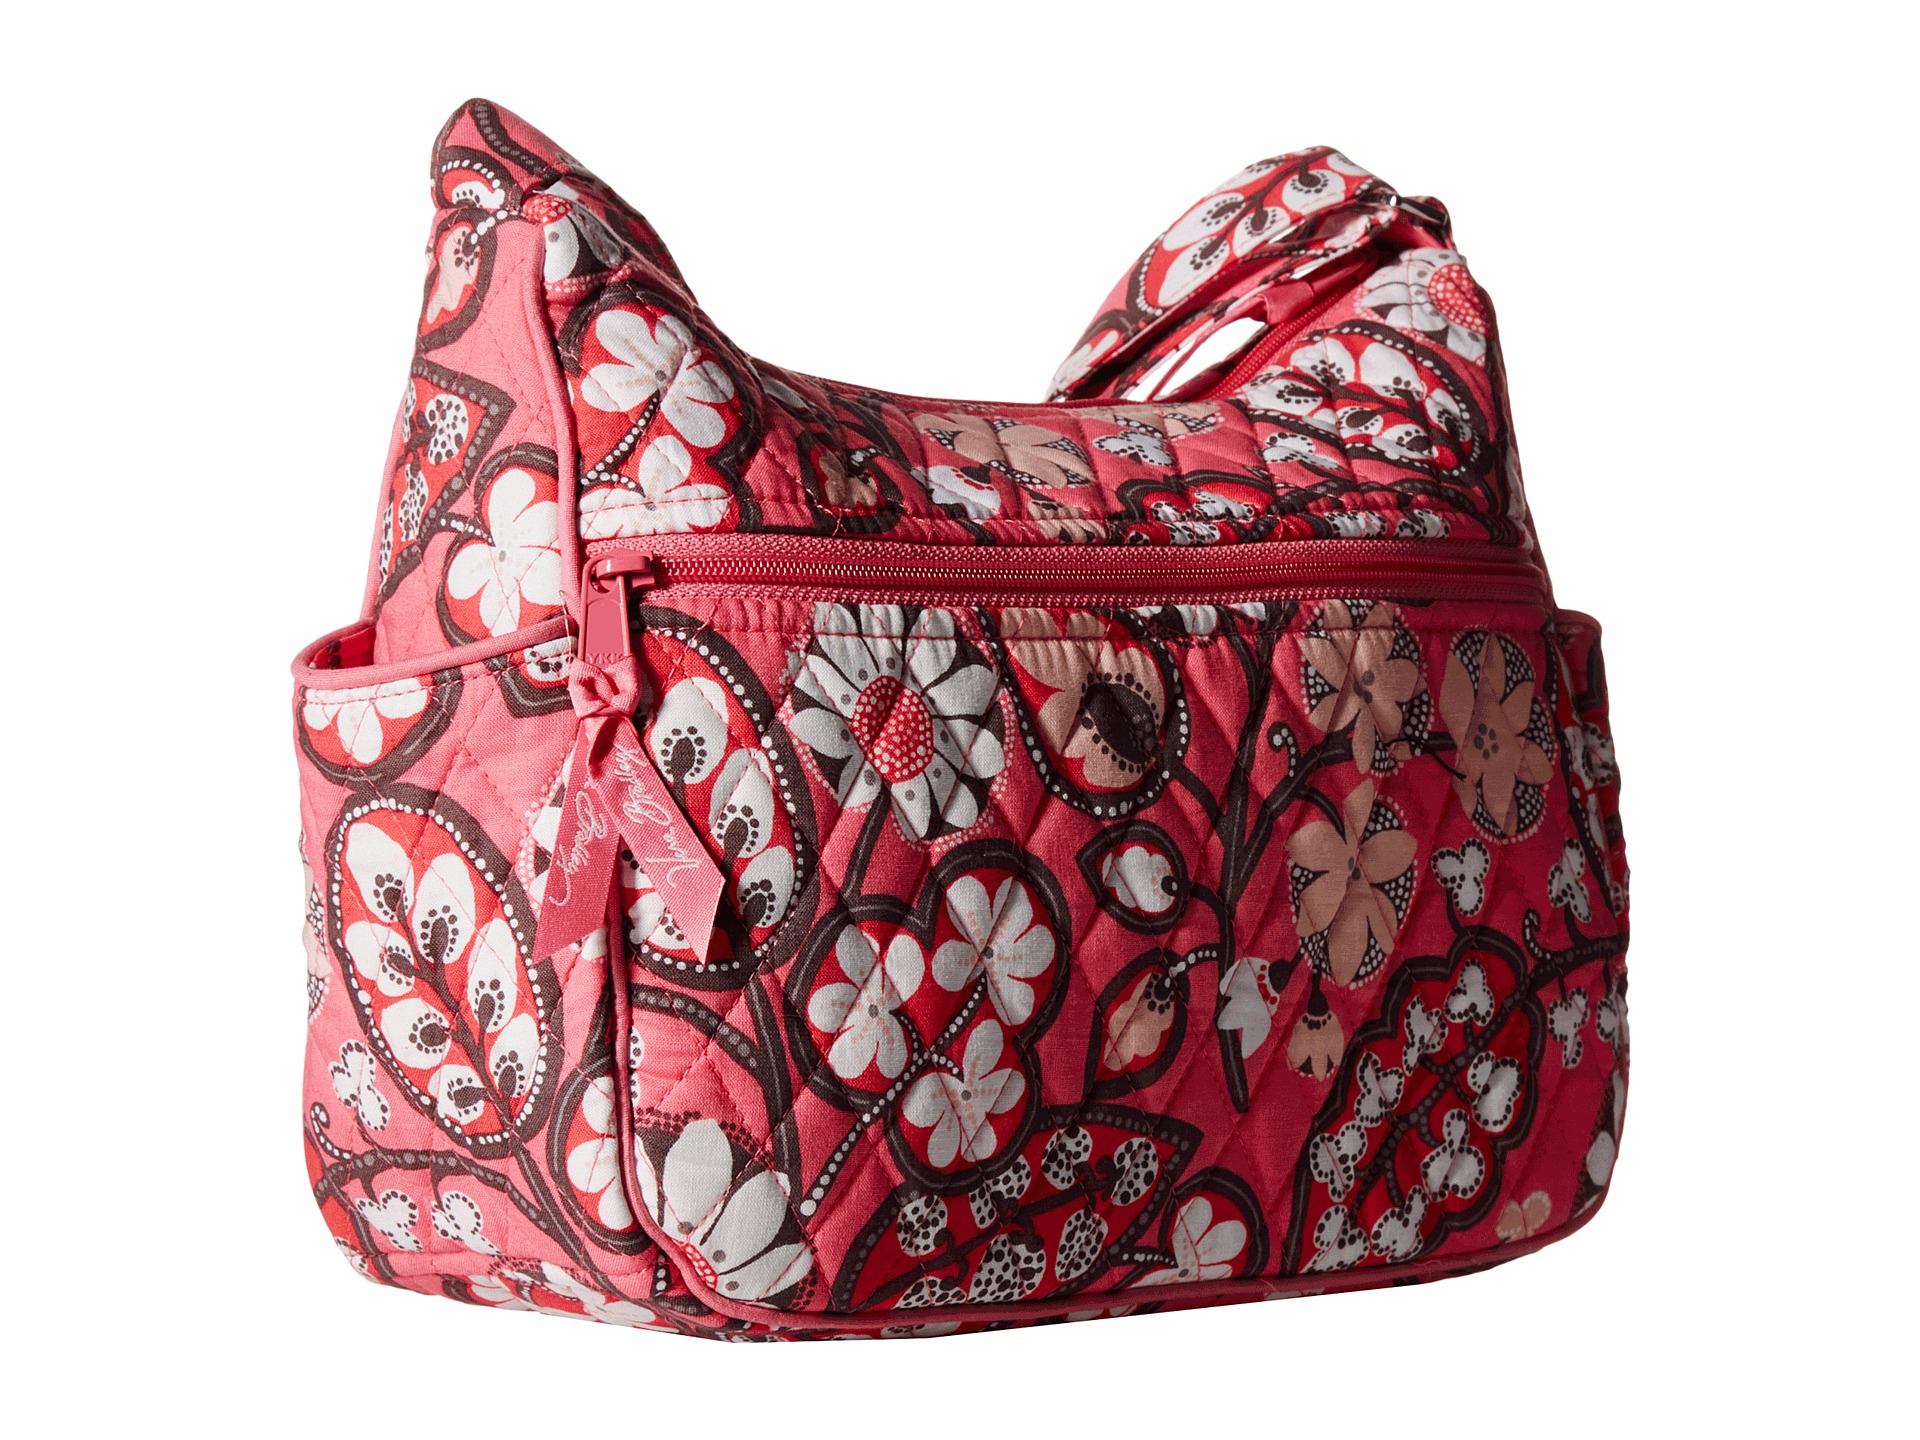 564f78dca1ae Lyst - Vera Bradley On The Go in Pink